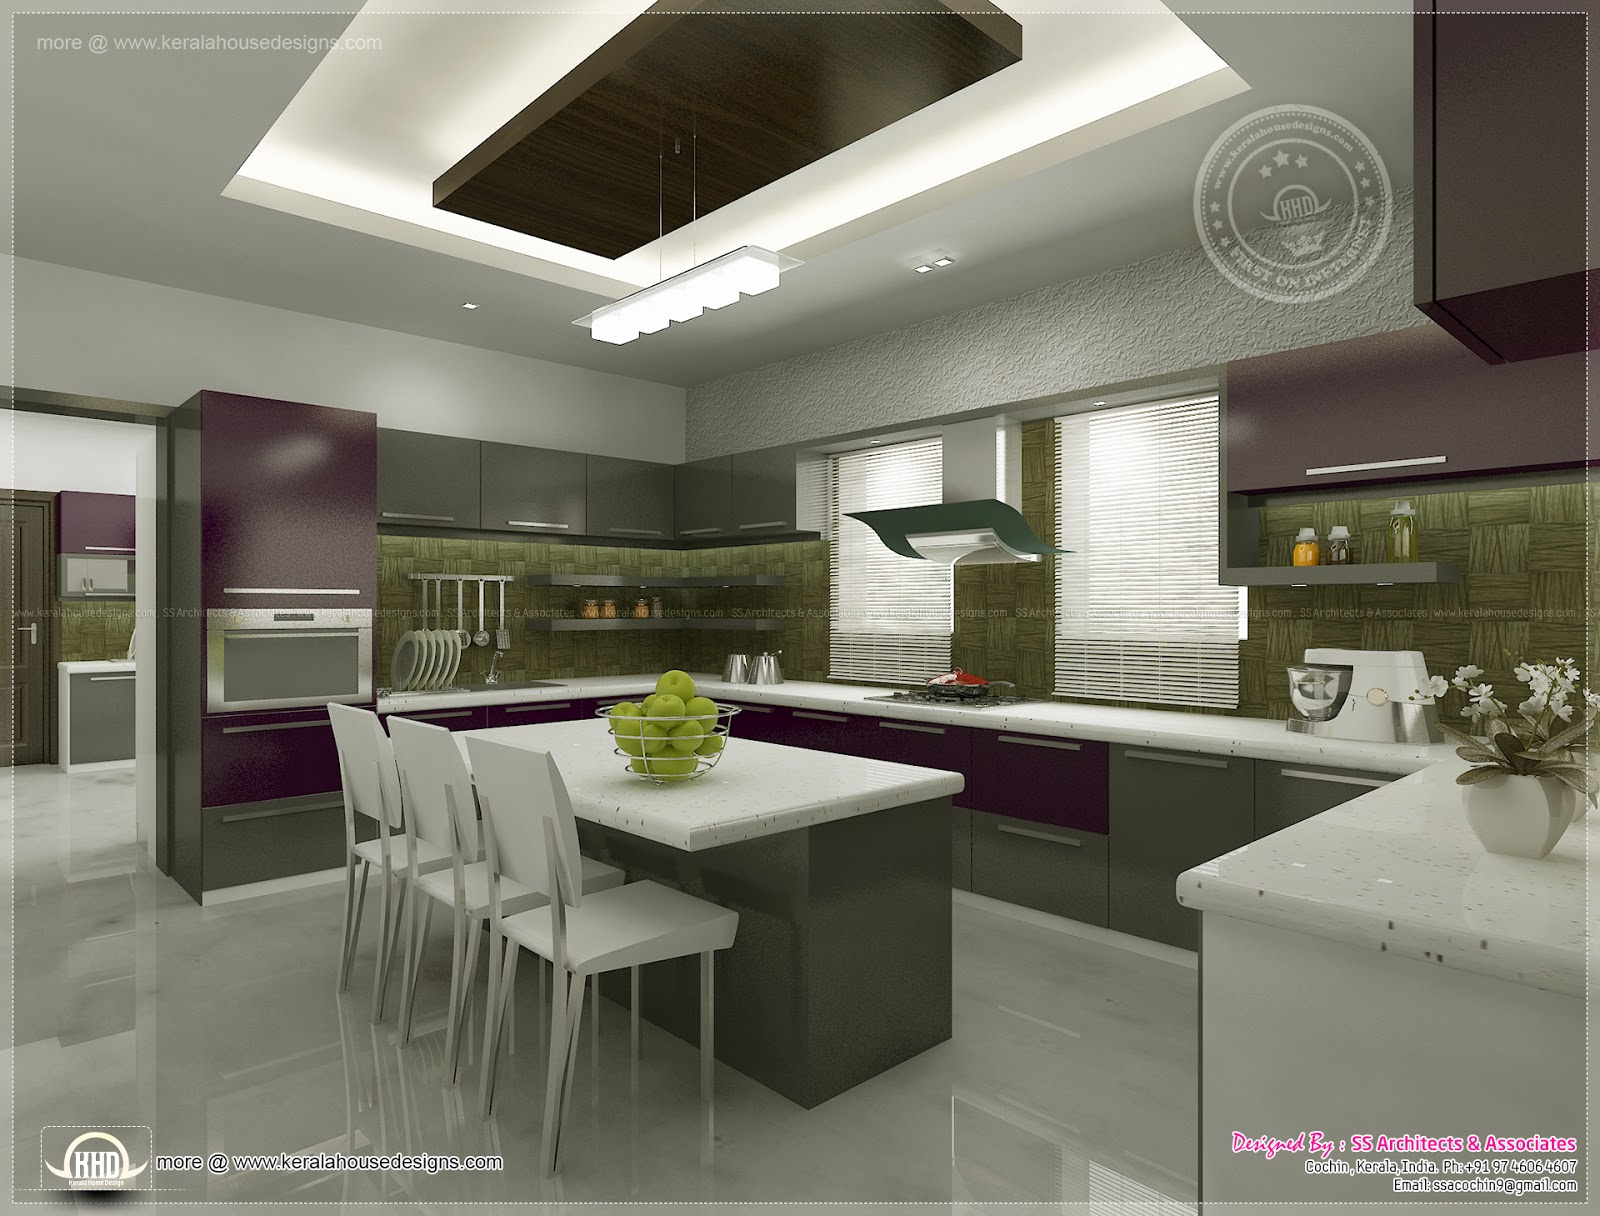 Kitchen interior views by SS Architects, Cochin - Kerala